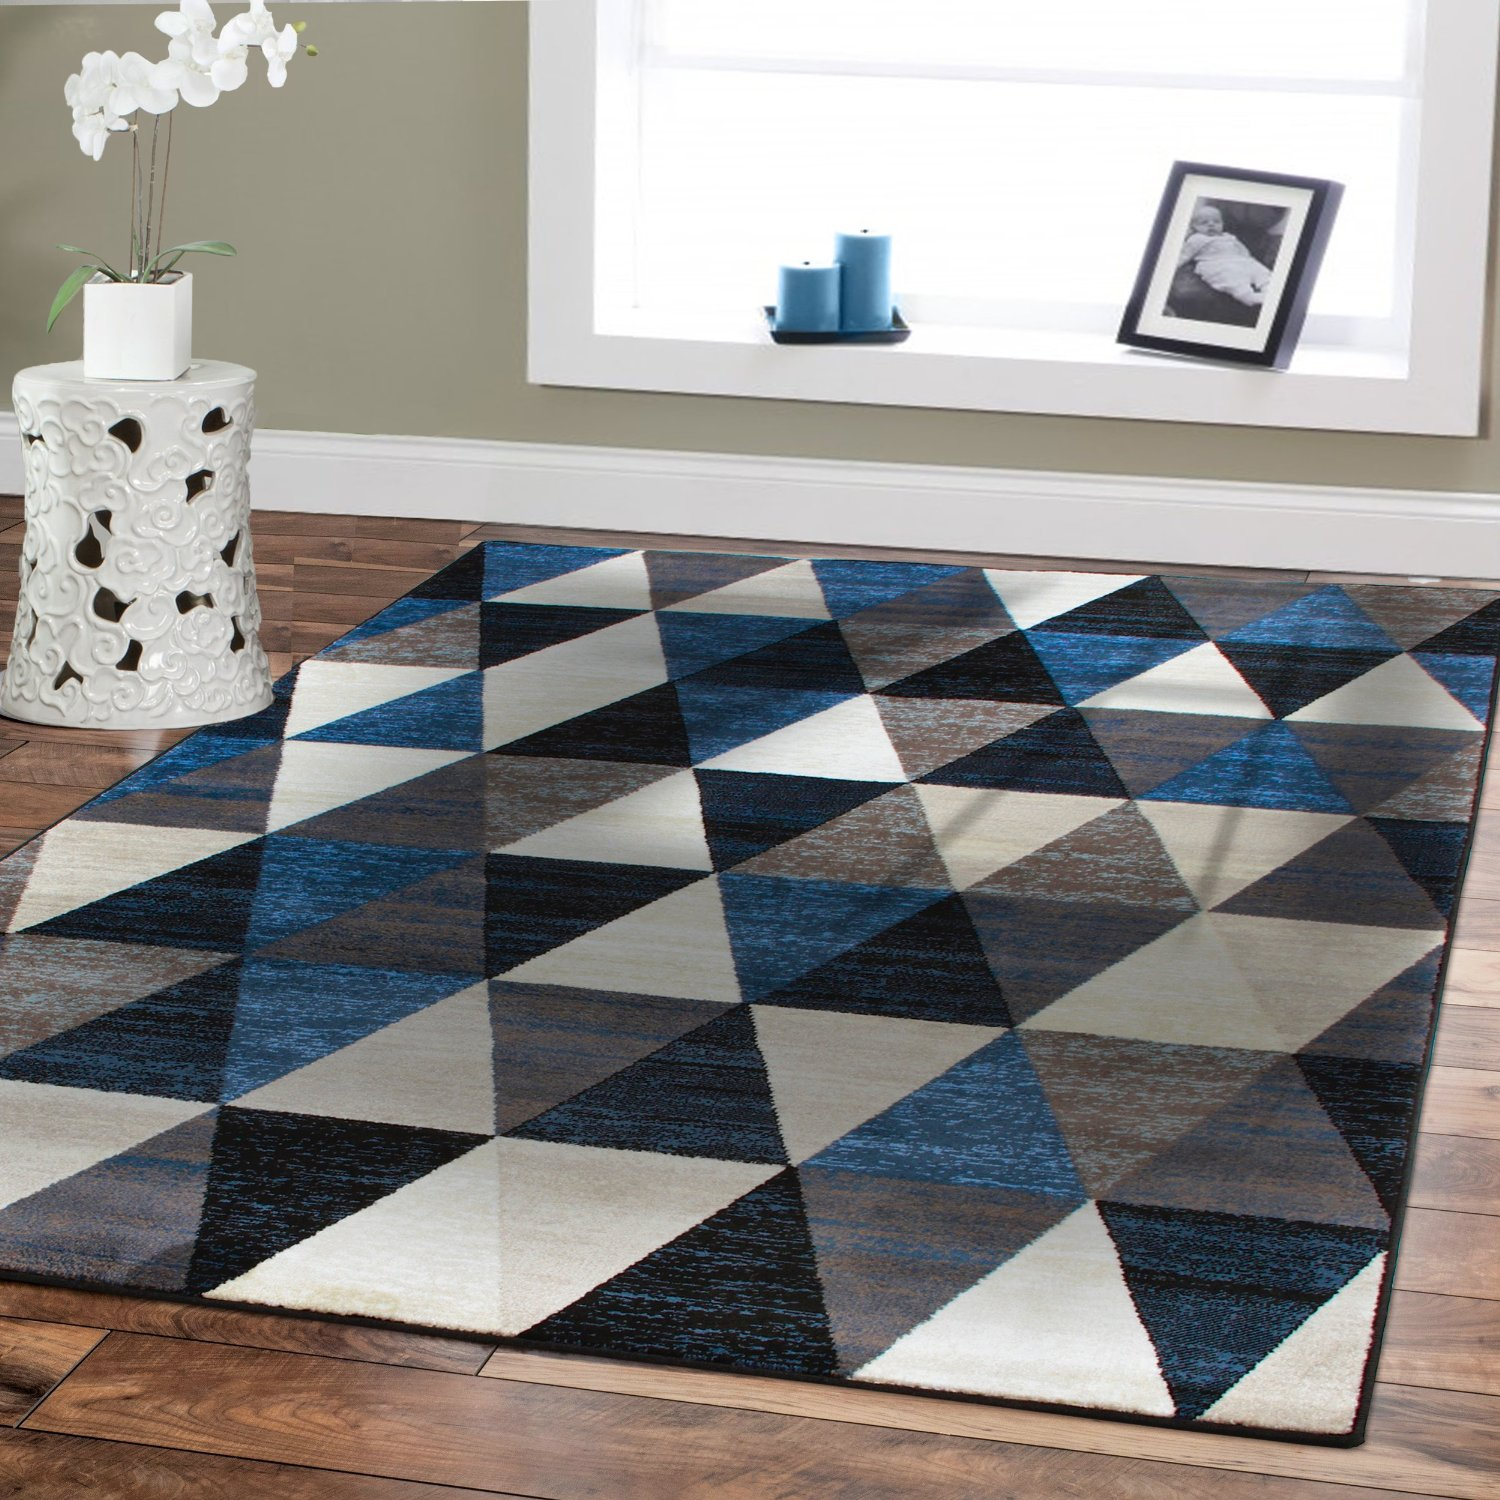 Cheap Kids Rugs 8x10 Find Kids Rugs 8x10 Deals On Line At Alibaba Com